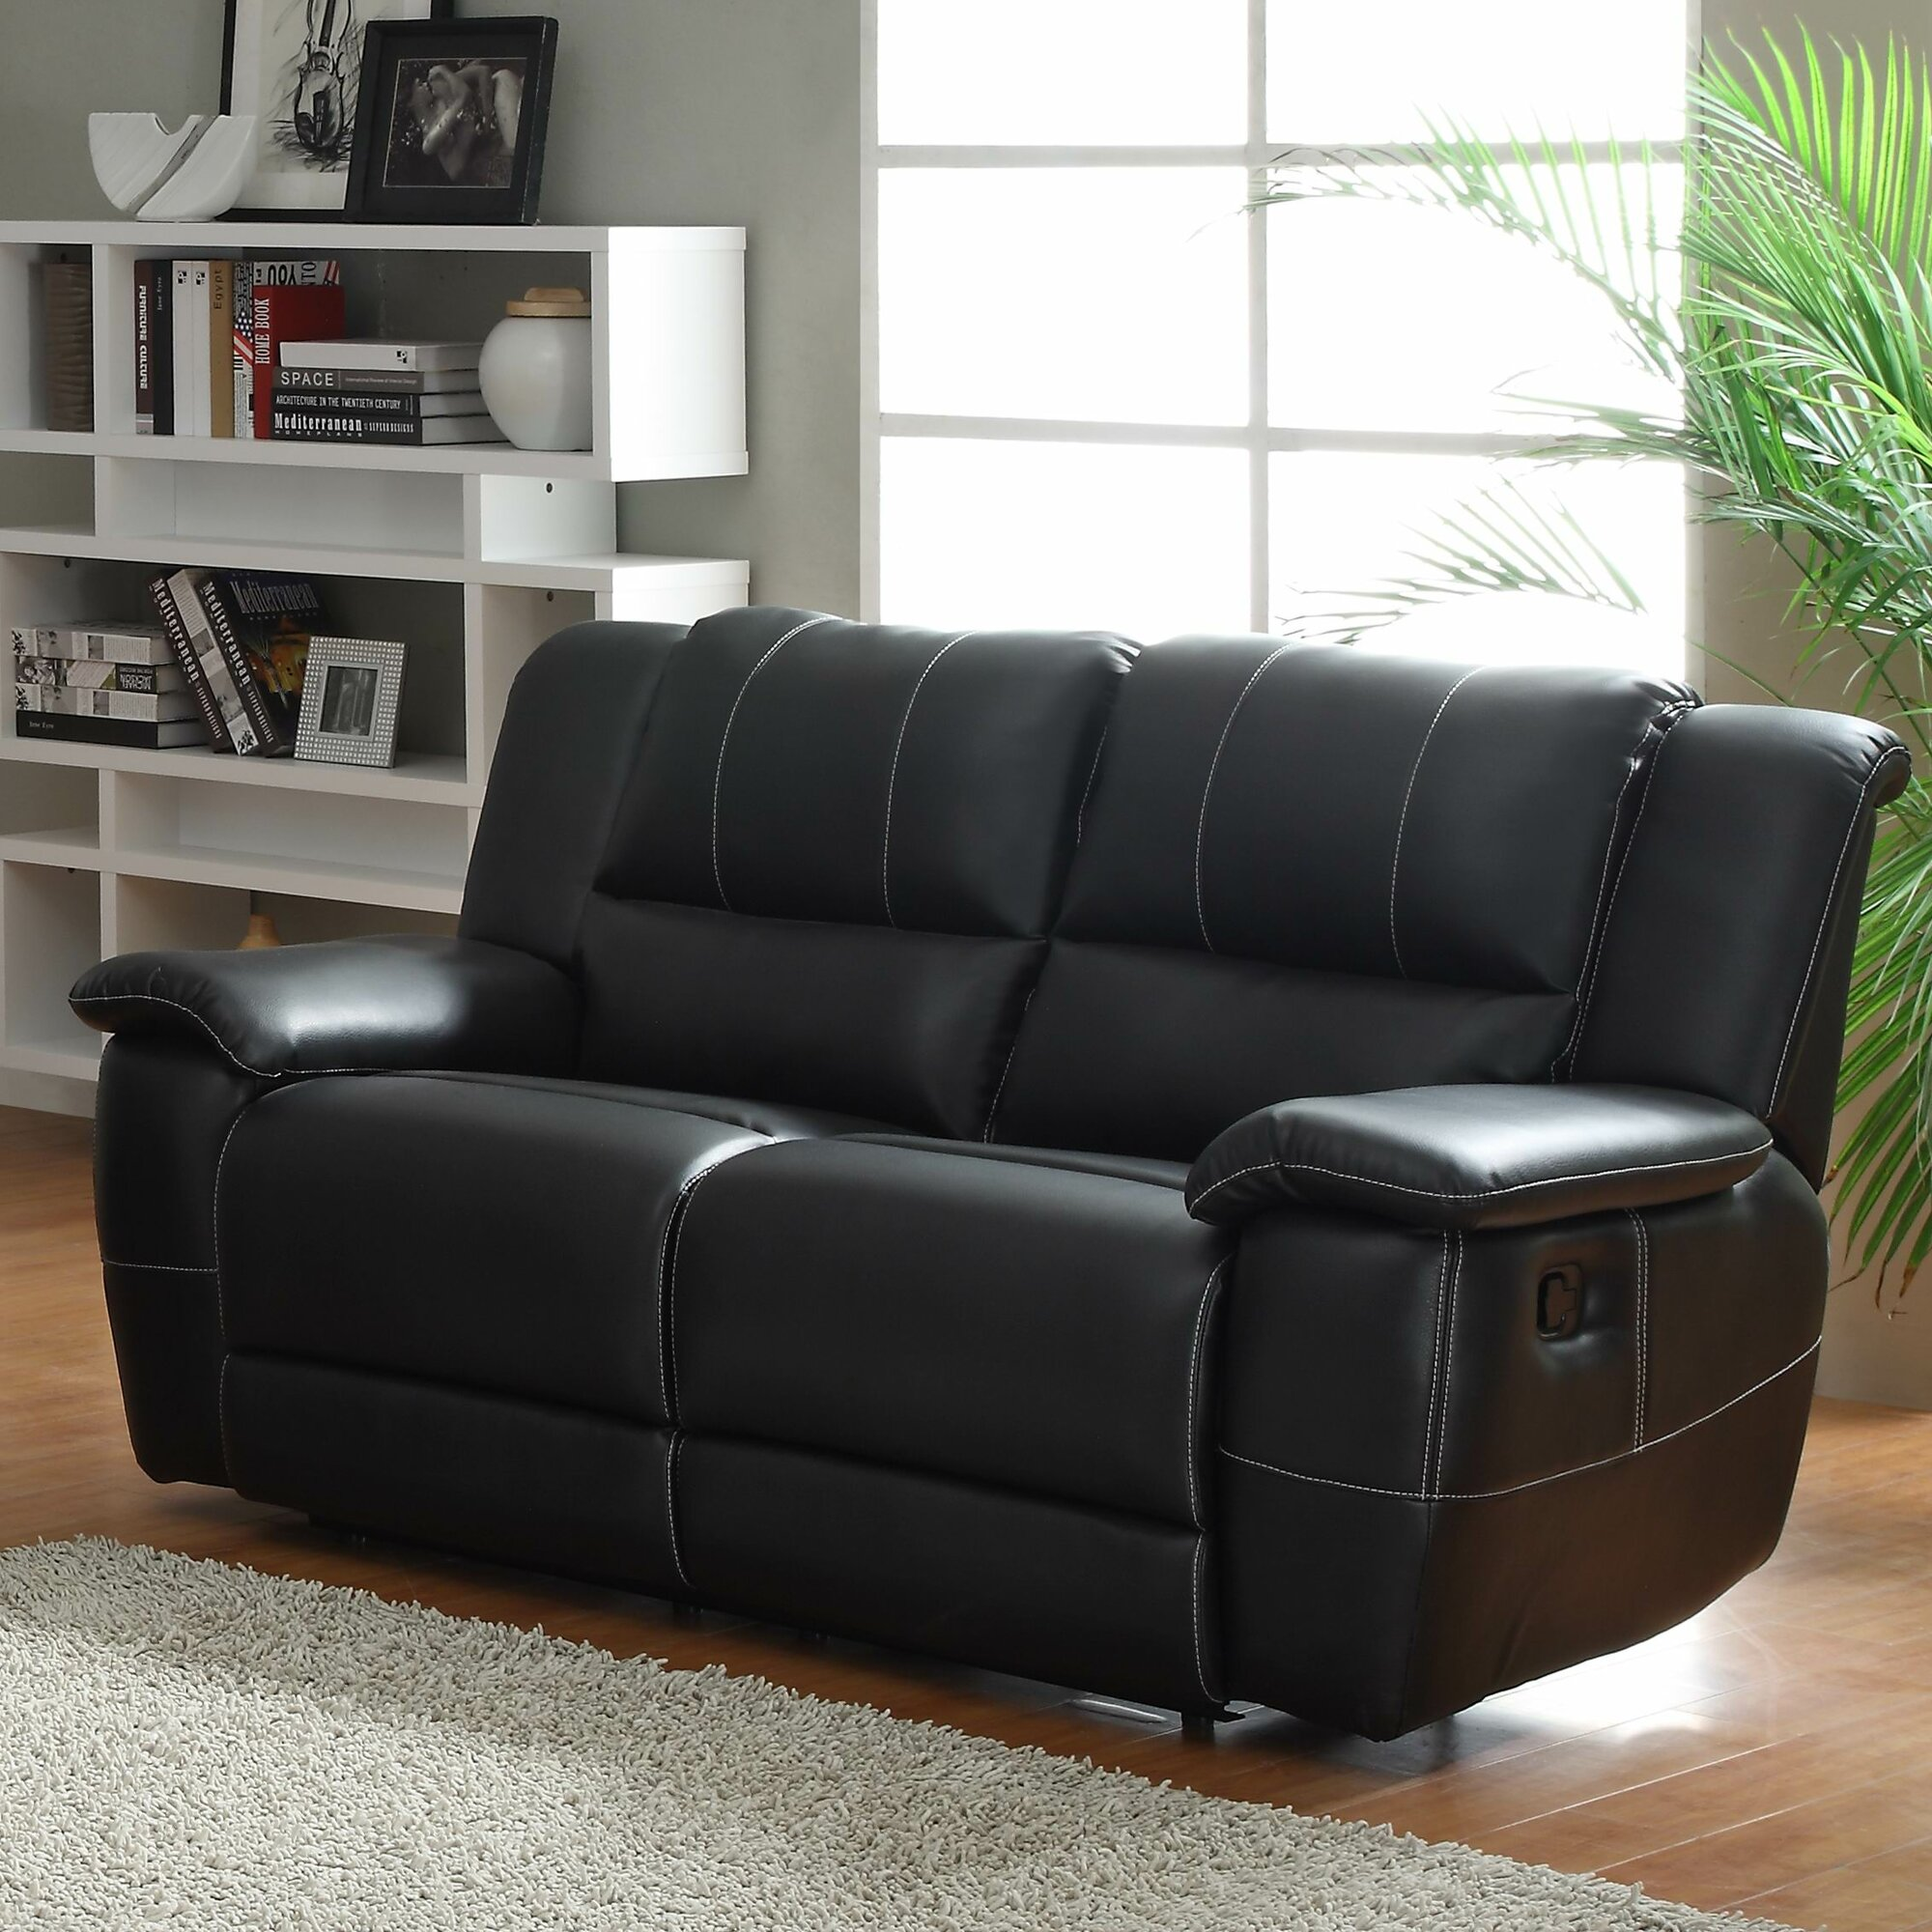 woodhaven living room furniture. Woodhaven Hill Cantrell Living Room Collection Reviews Wayfair  Furniture safemarket us